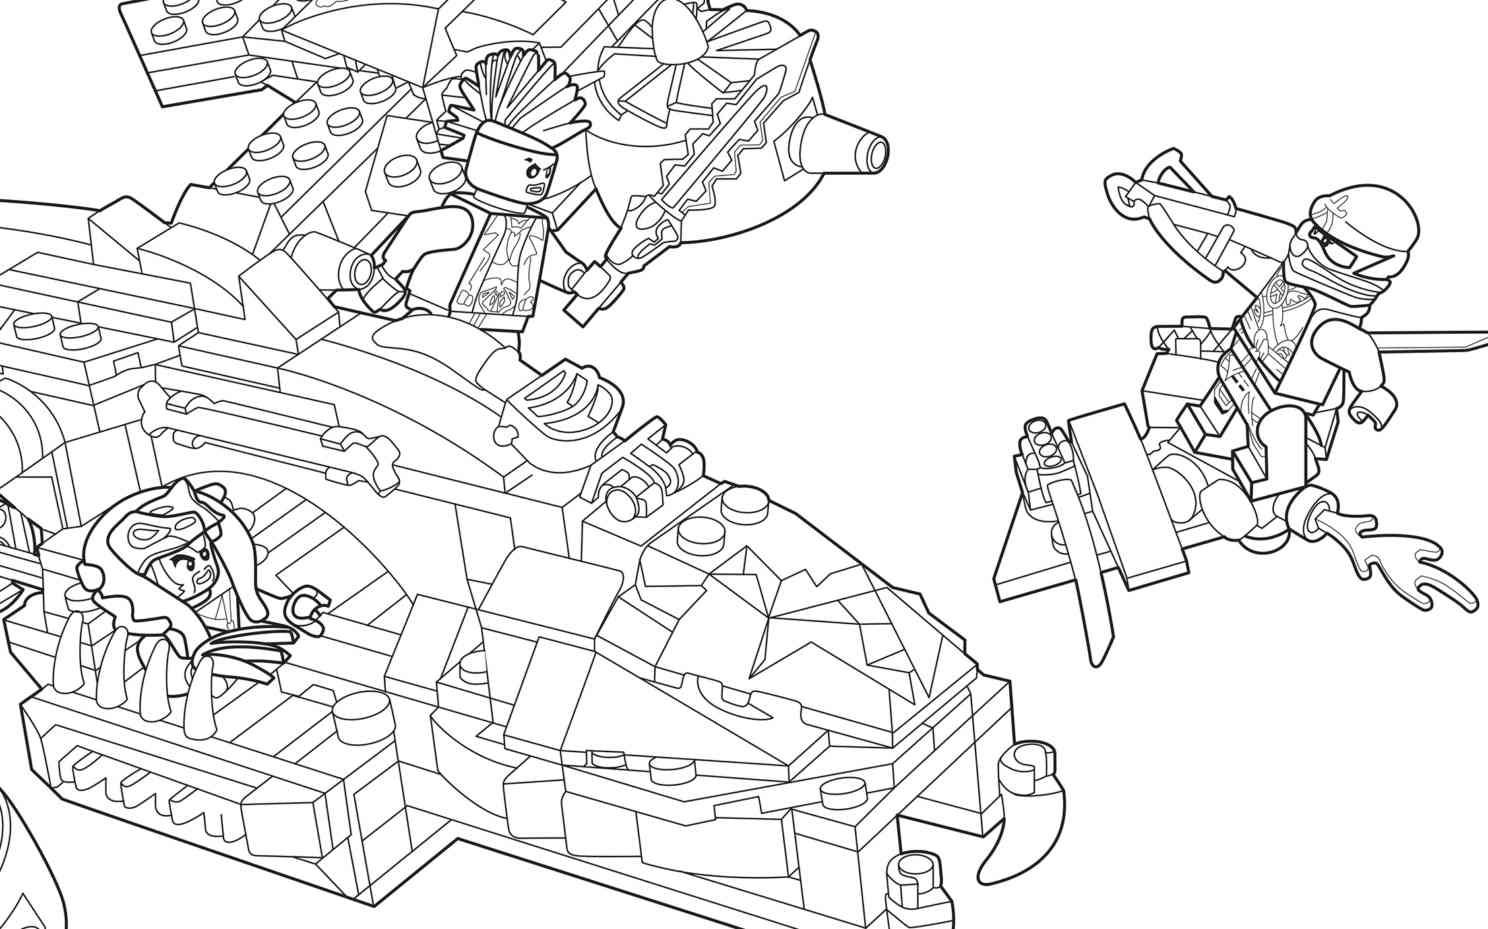 ninjago coloring pages - lego ninjago 70746 coloring sheet lego coloring sheets